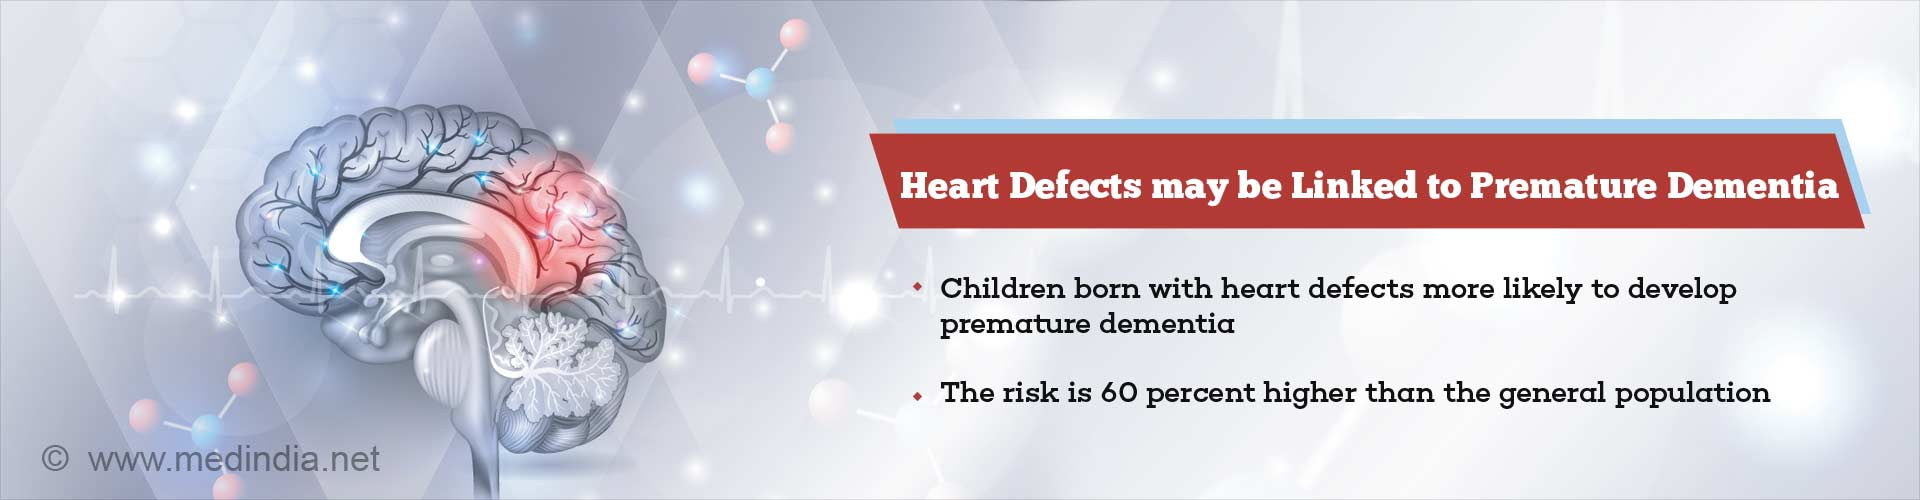 Childhood Heart Defects may Increase the Risk of Premature Dementia